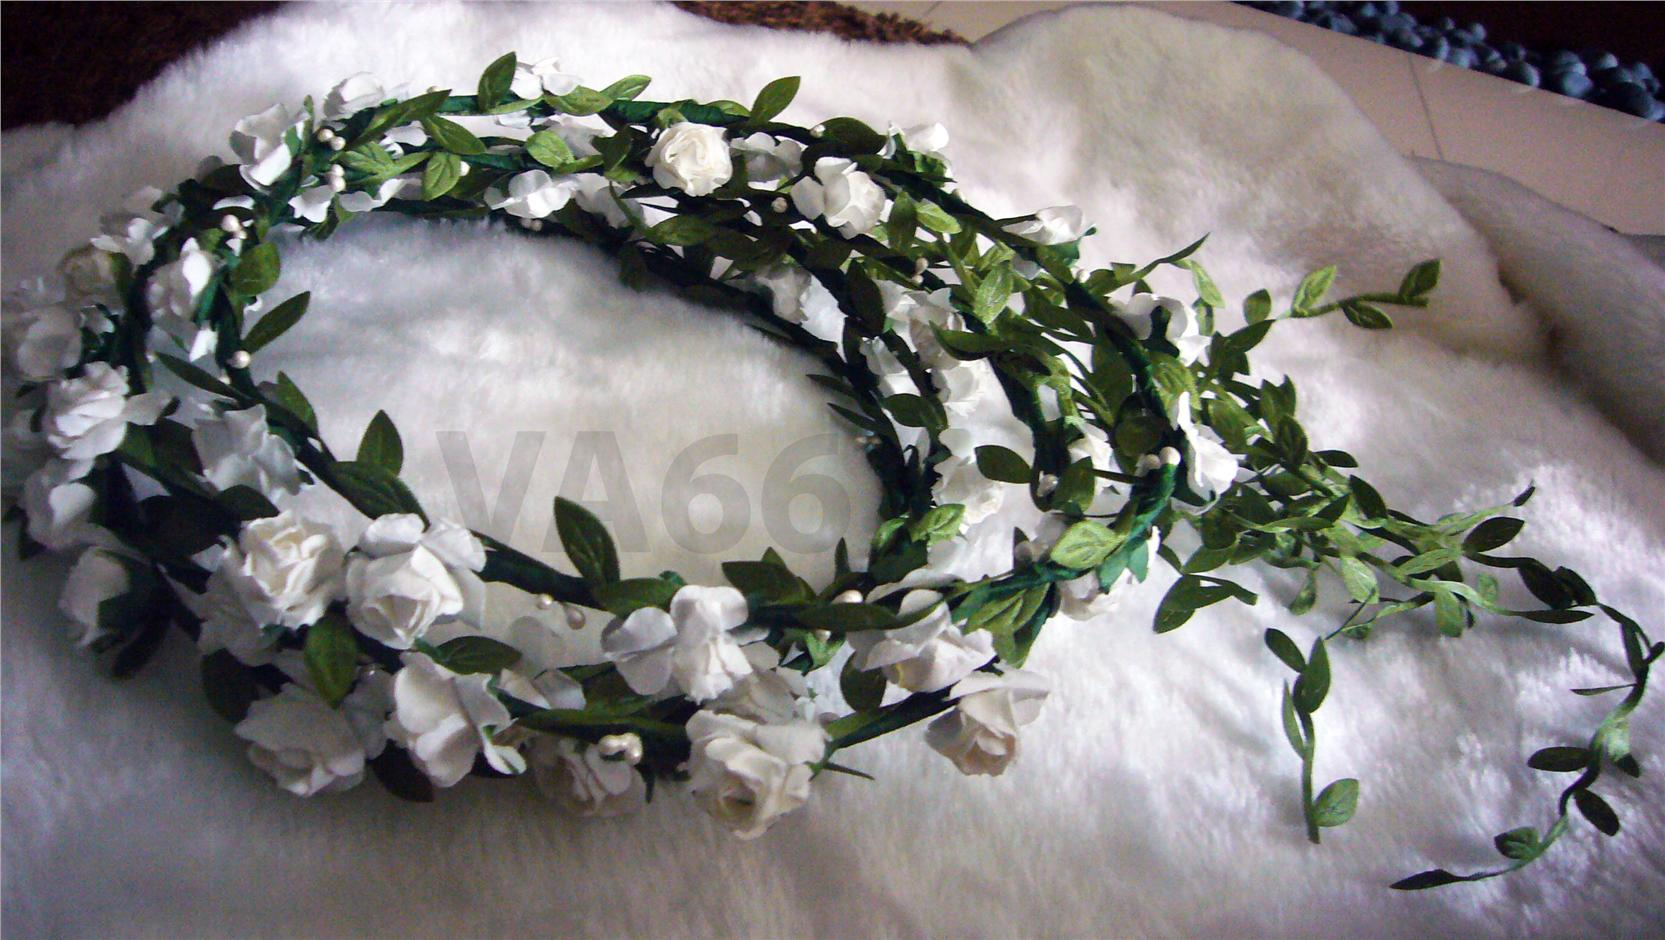 White rose flower girl hair wreath b end 5292017 752 pm white rose flower girl hair wreath bridal flower crown headband trail izmirmasajfo Image collections